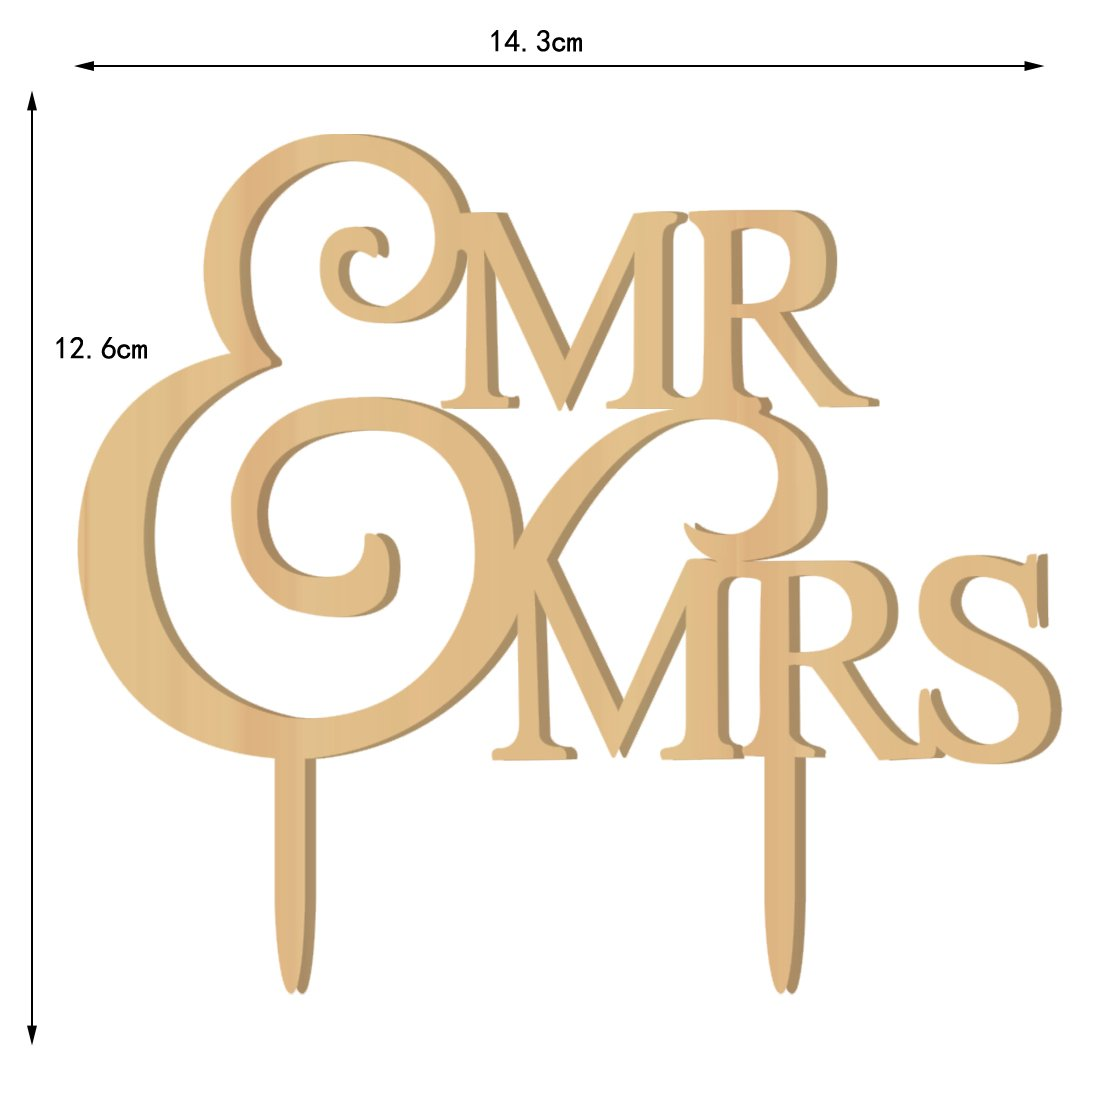 Mr and Mrs Wedding Cake Toppers Wood Party Cake Decoration Bride And Groom Love by juyue (Image #2)